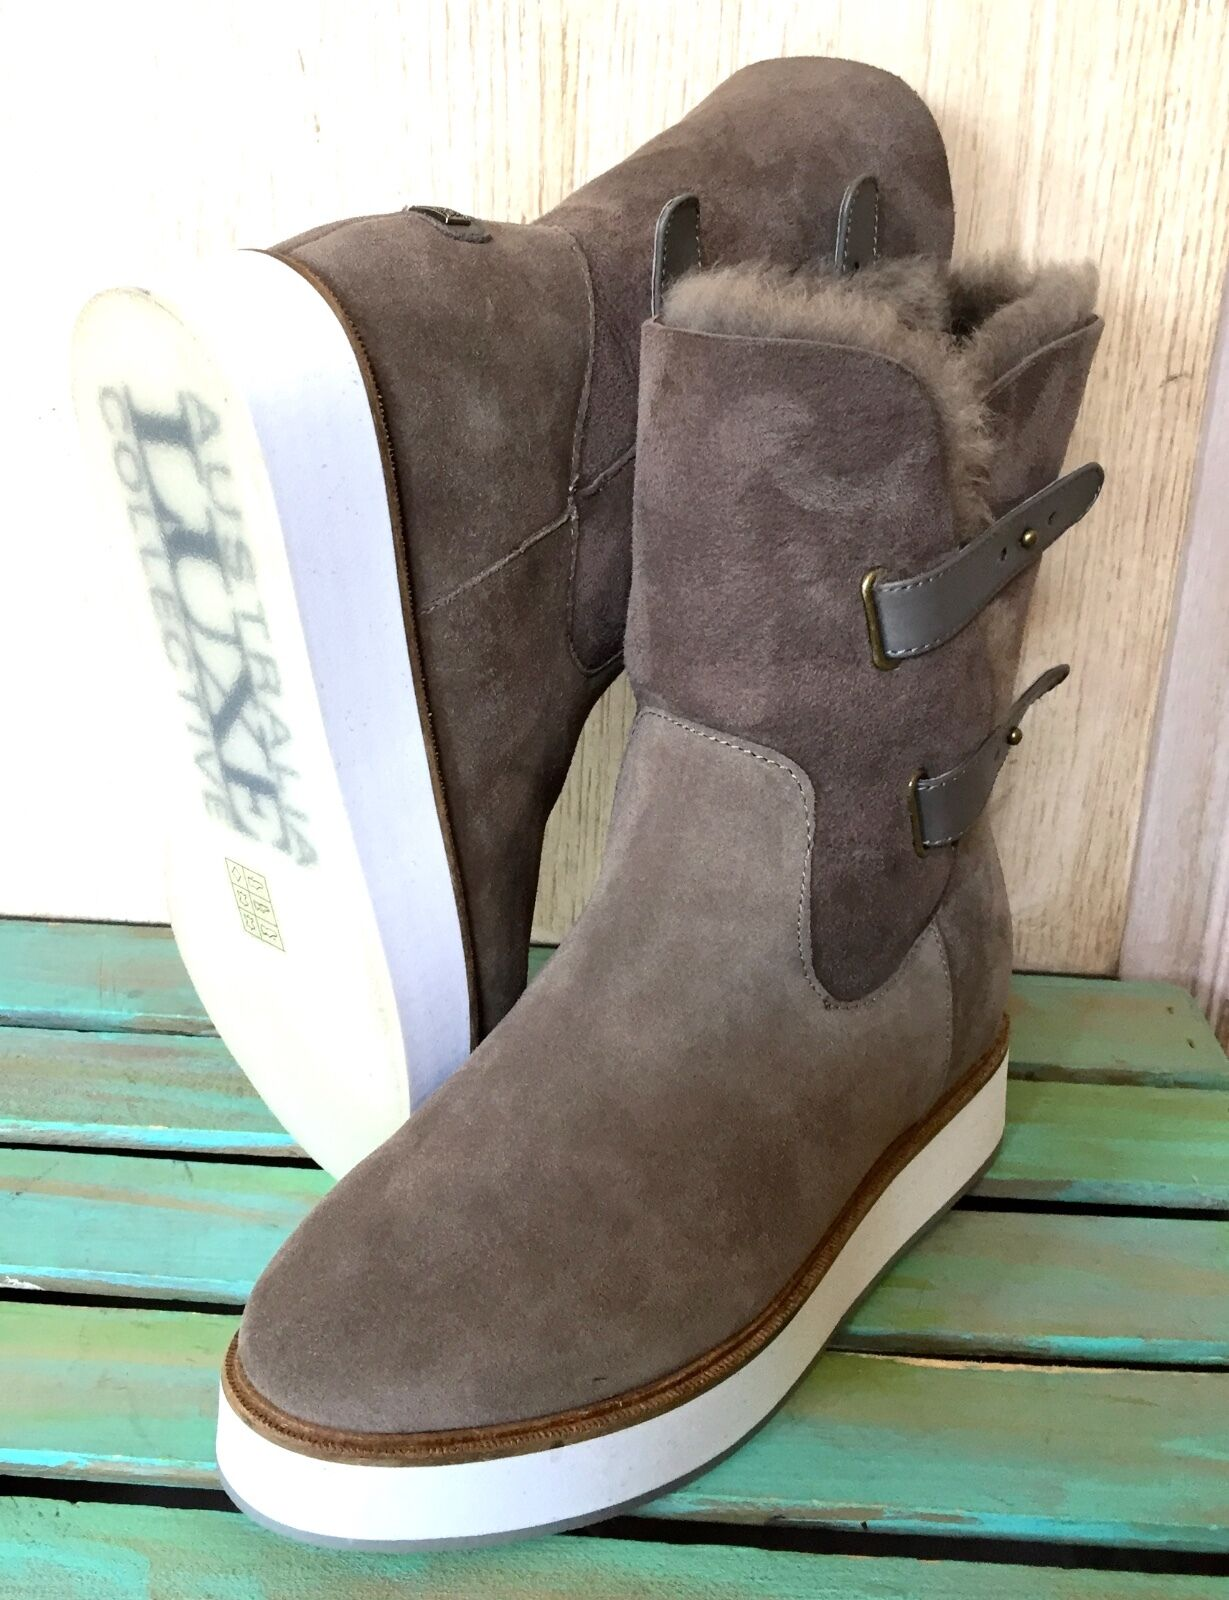 NIB Anthropologie Australia Luxe Taupe Fur Lined Shearling Suede Wedge Boots 7